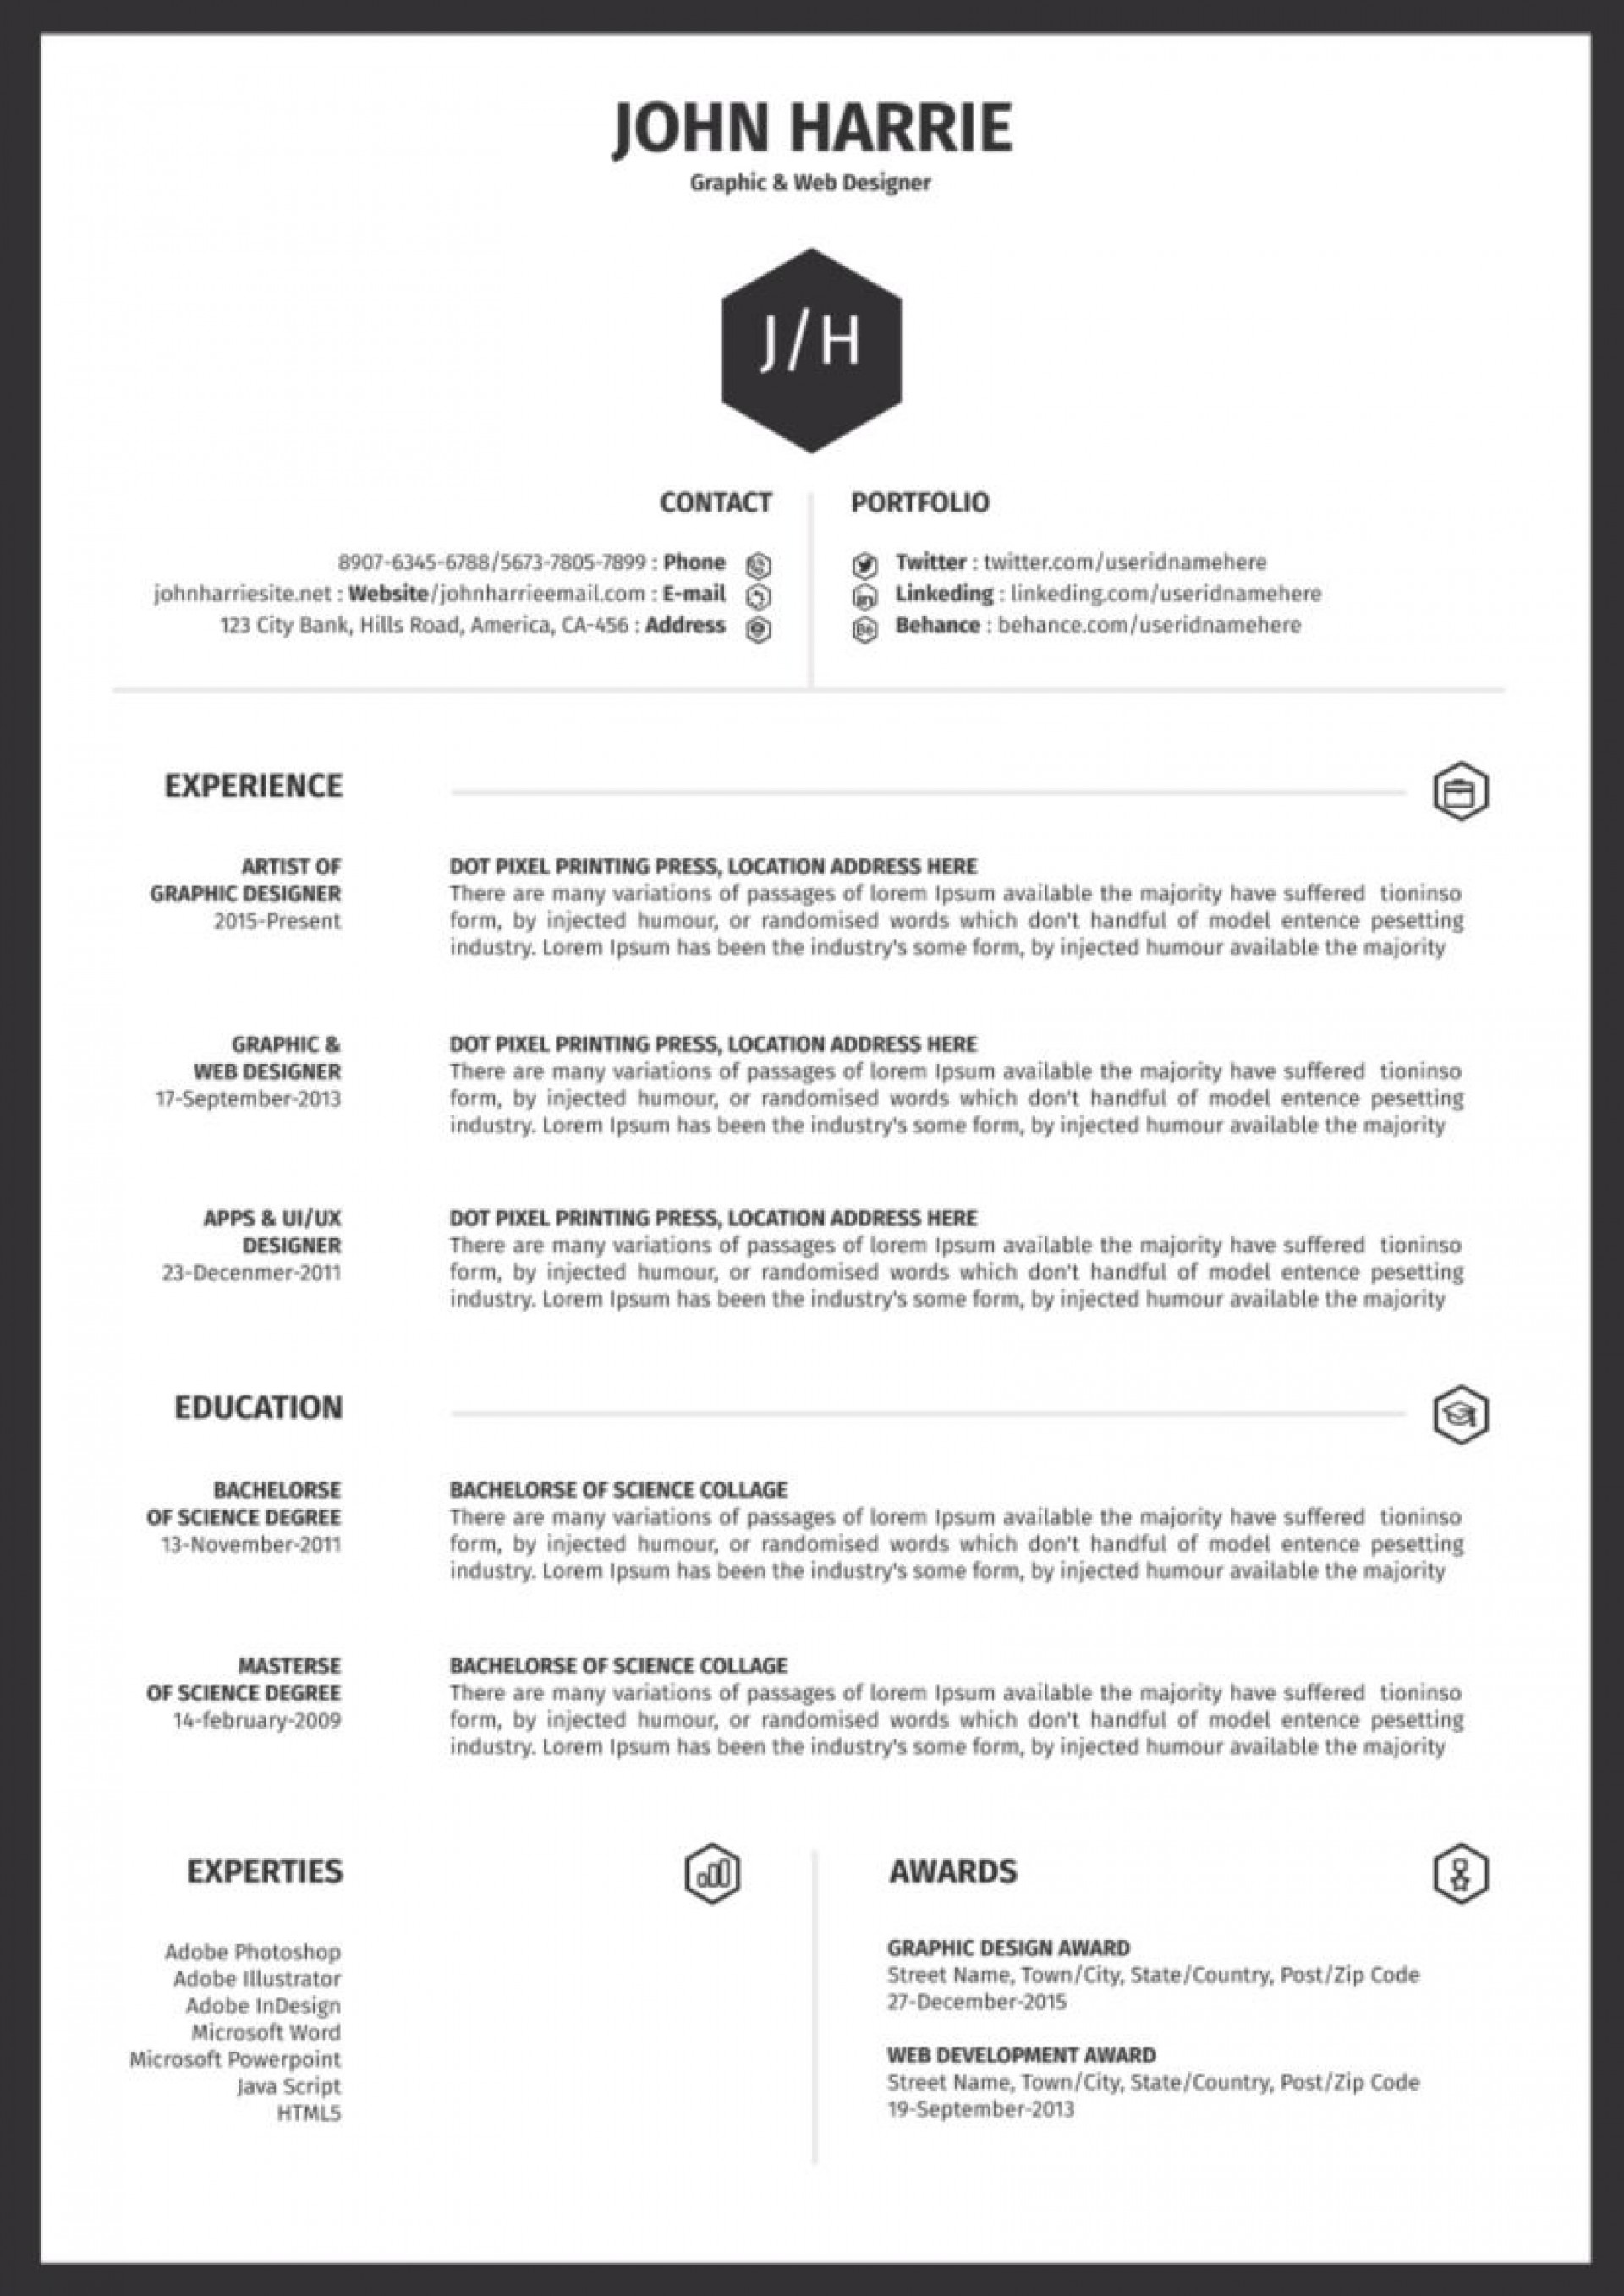 010 Unusual 1 Page Resume Template Idea  Templates One Basic Word Free Html Download1920